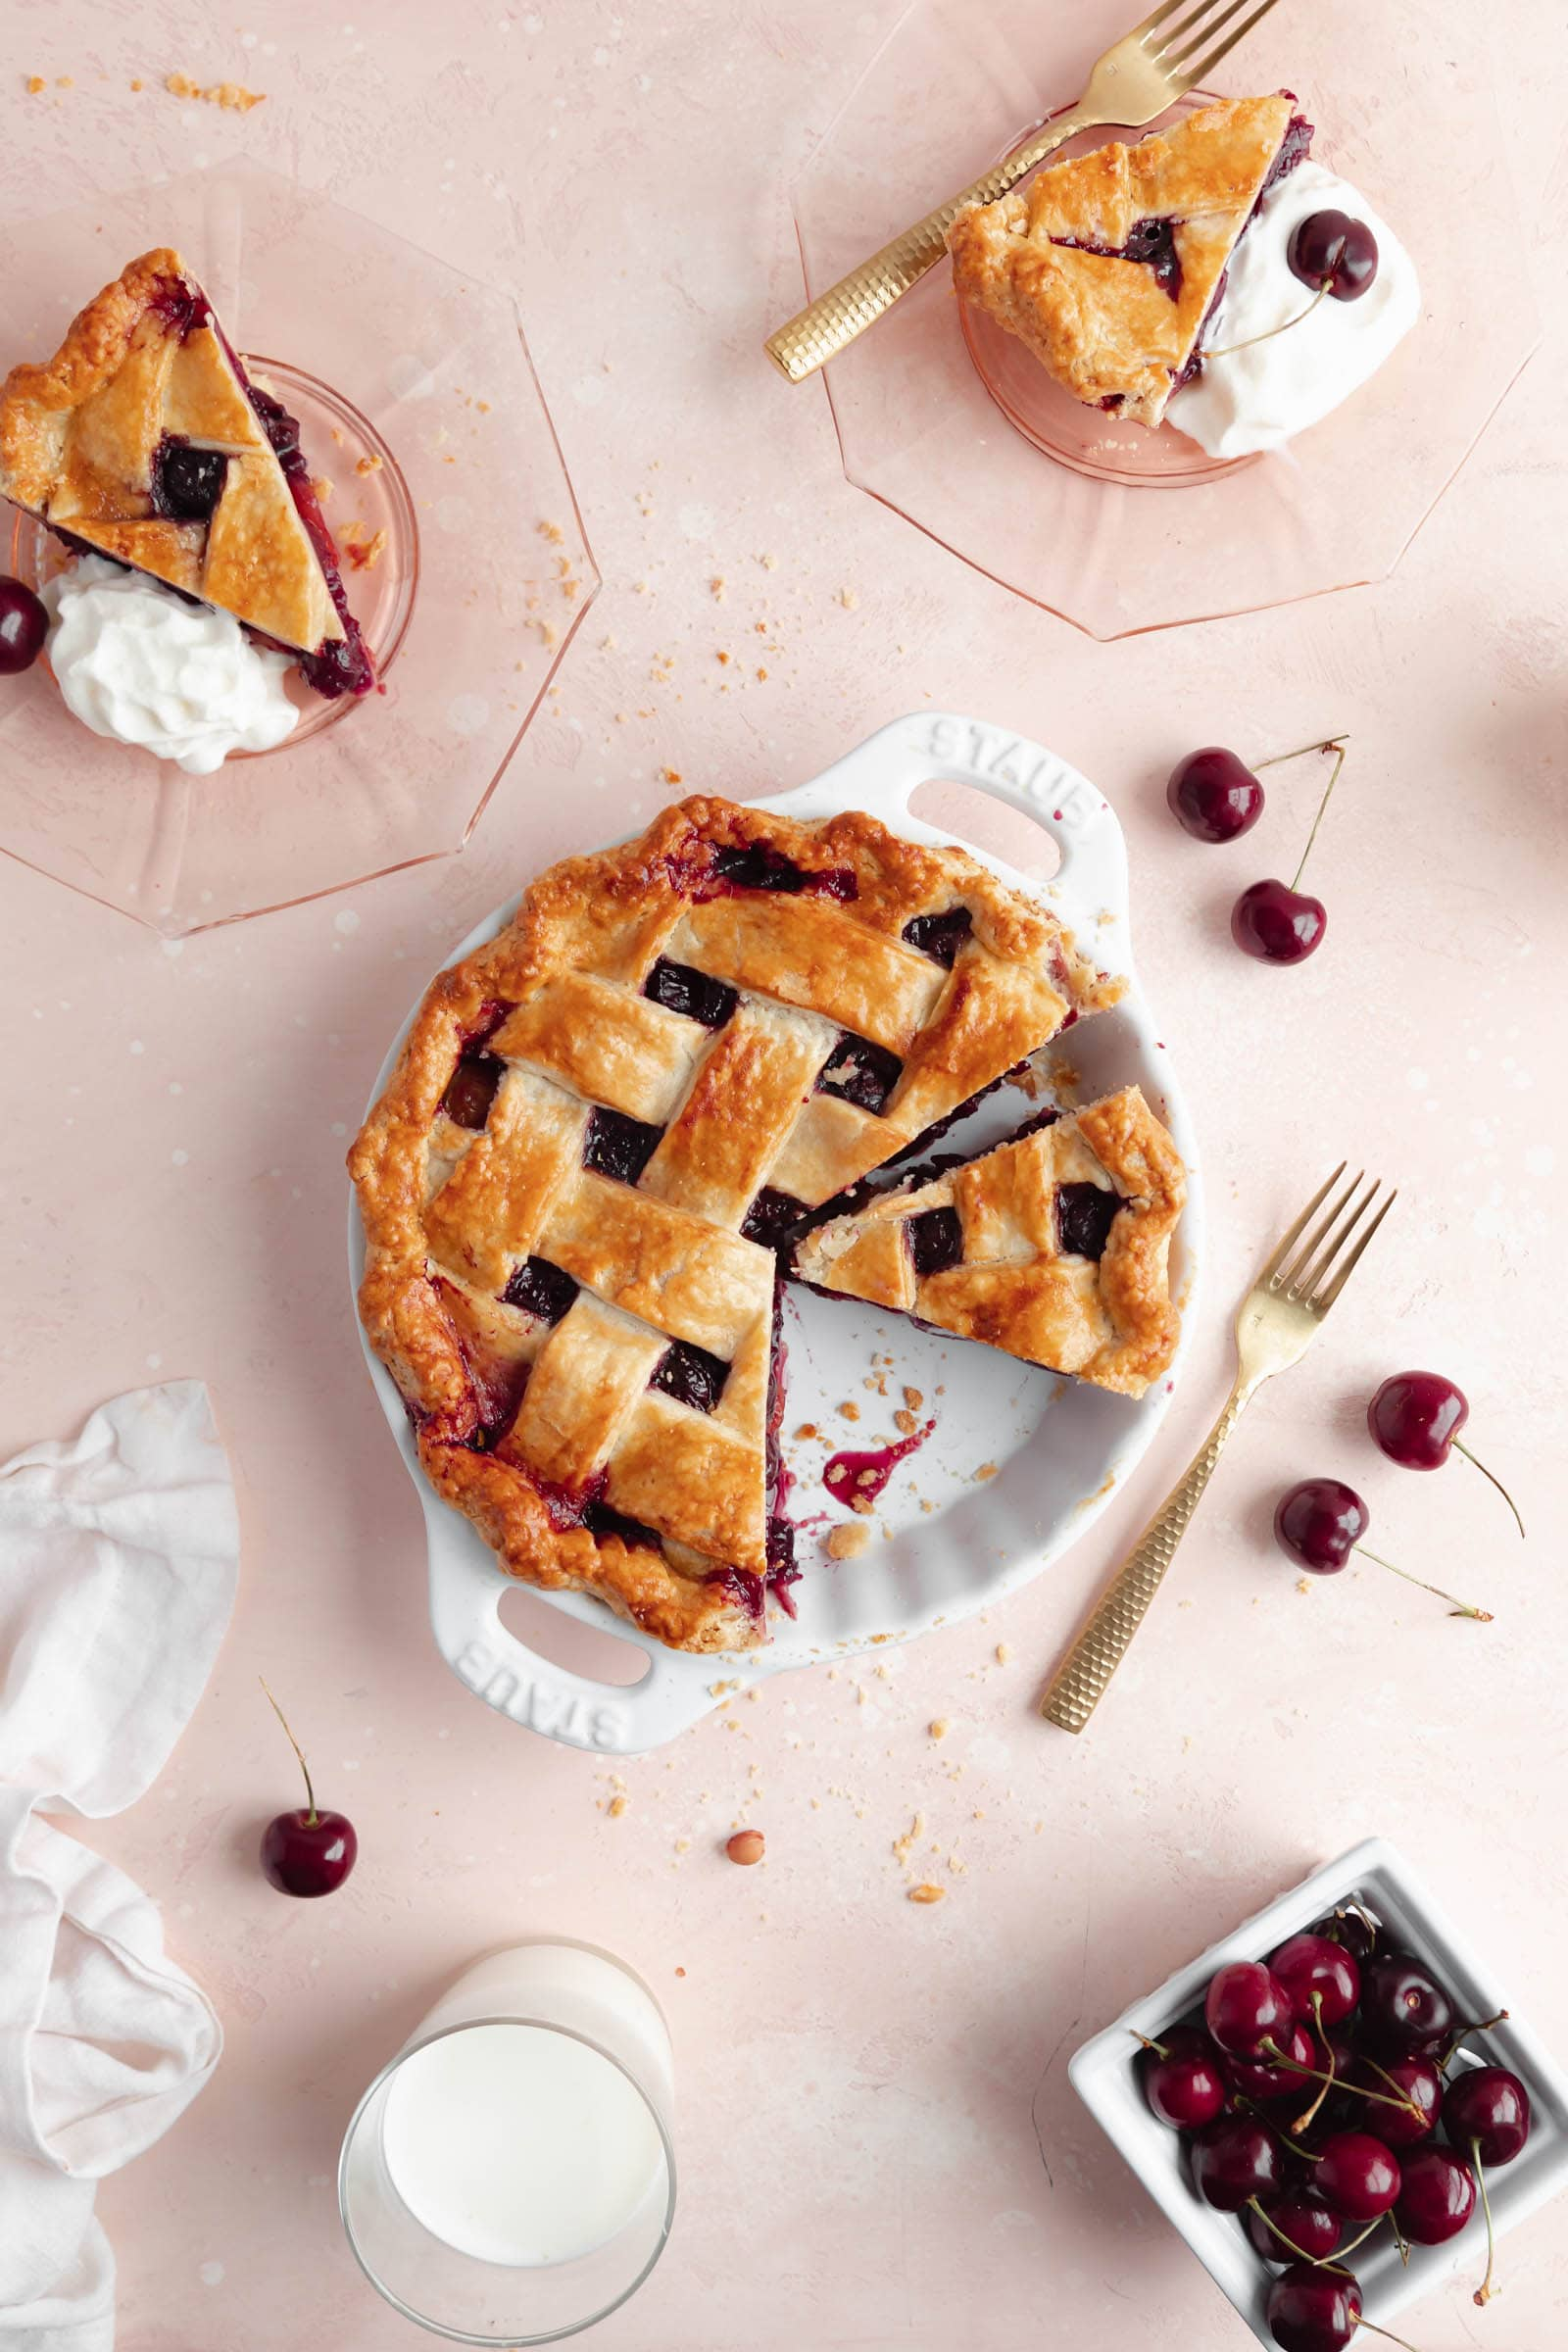 cherry pie with slices and cherries on a pink background